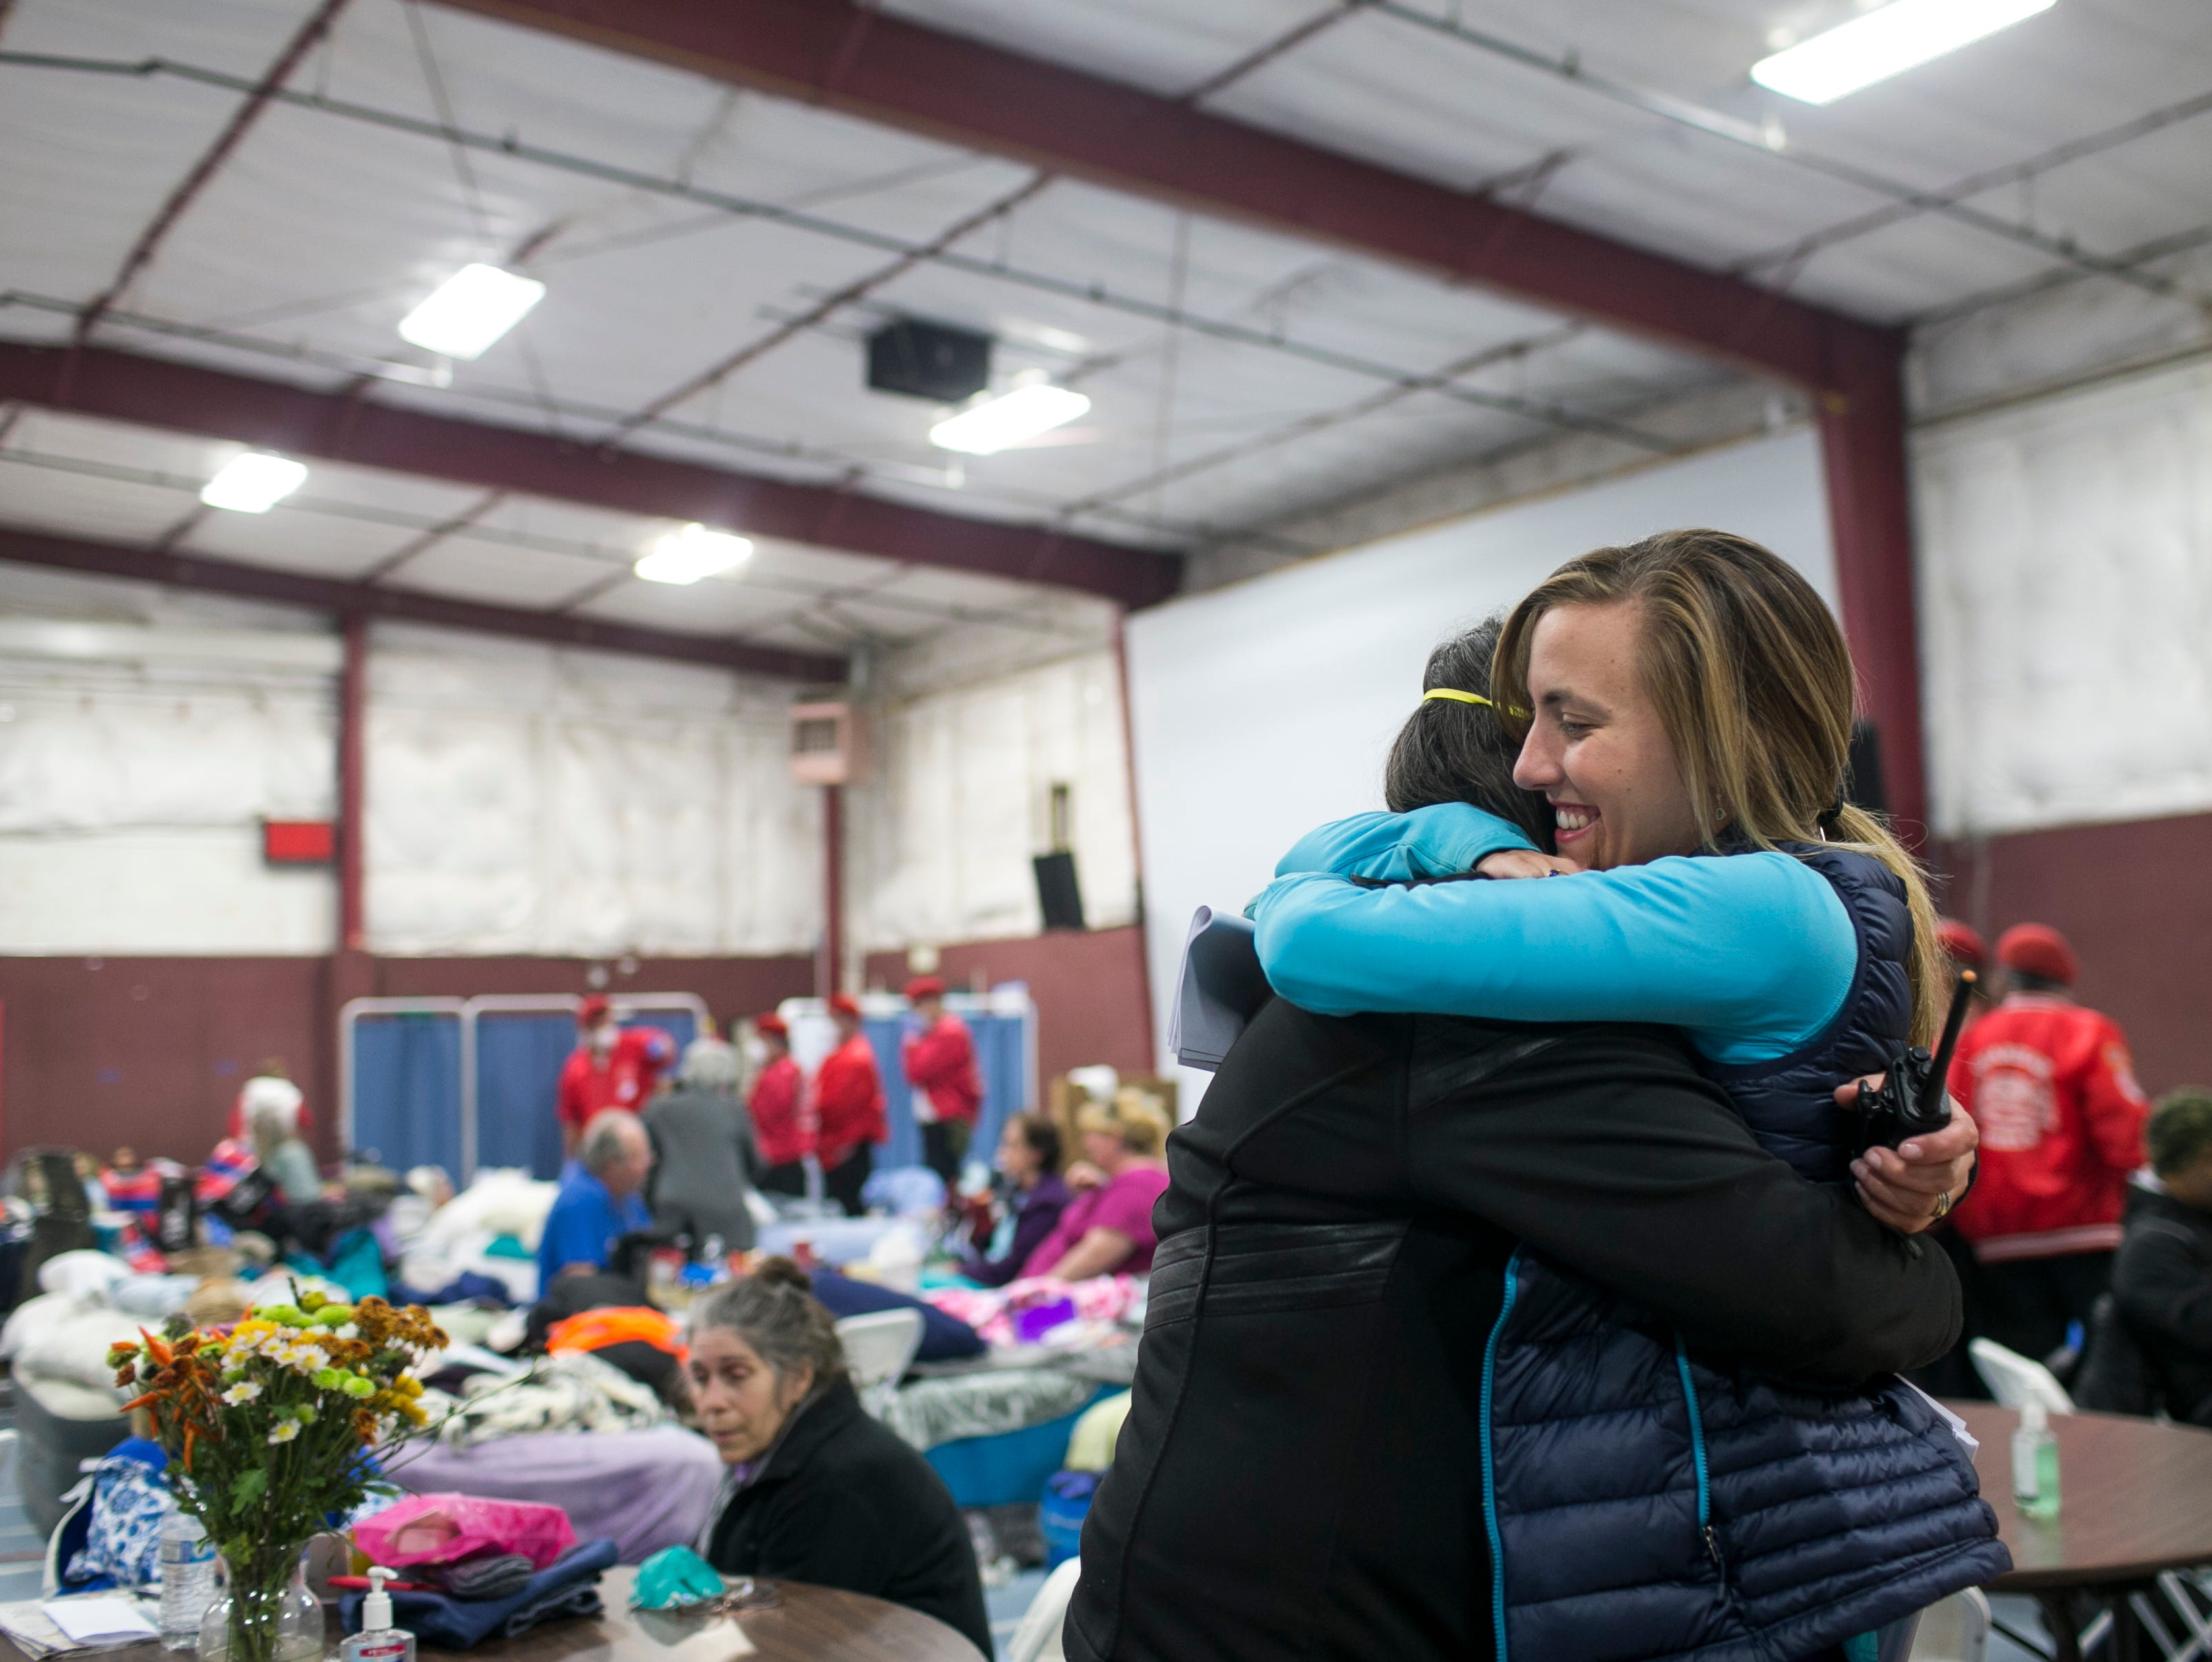 Camp Fire evacuees: East Avenue Church Shelter